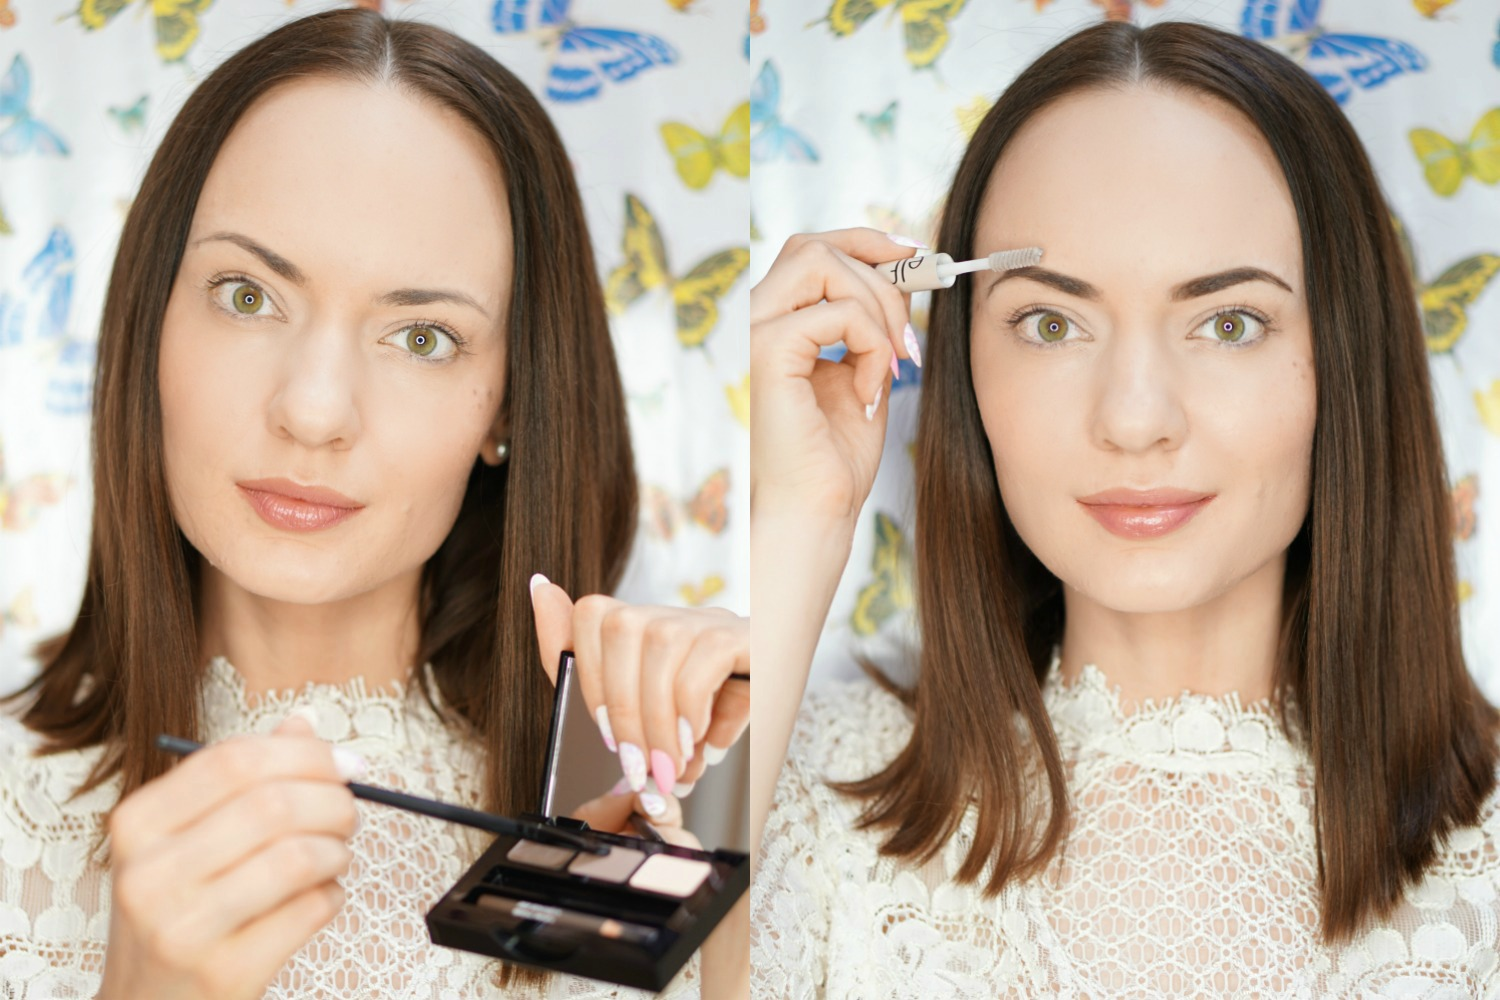 StyleSprinter - Brows 101 - Powder and Gel